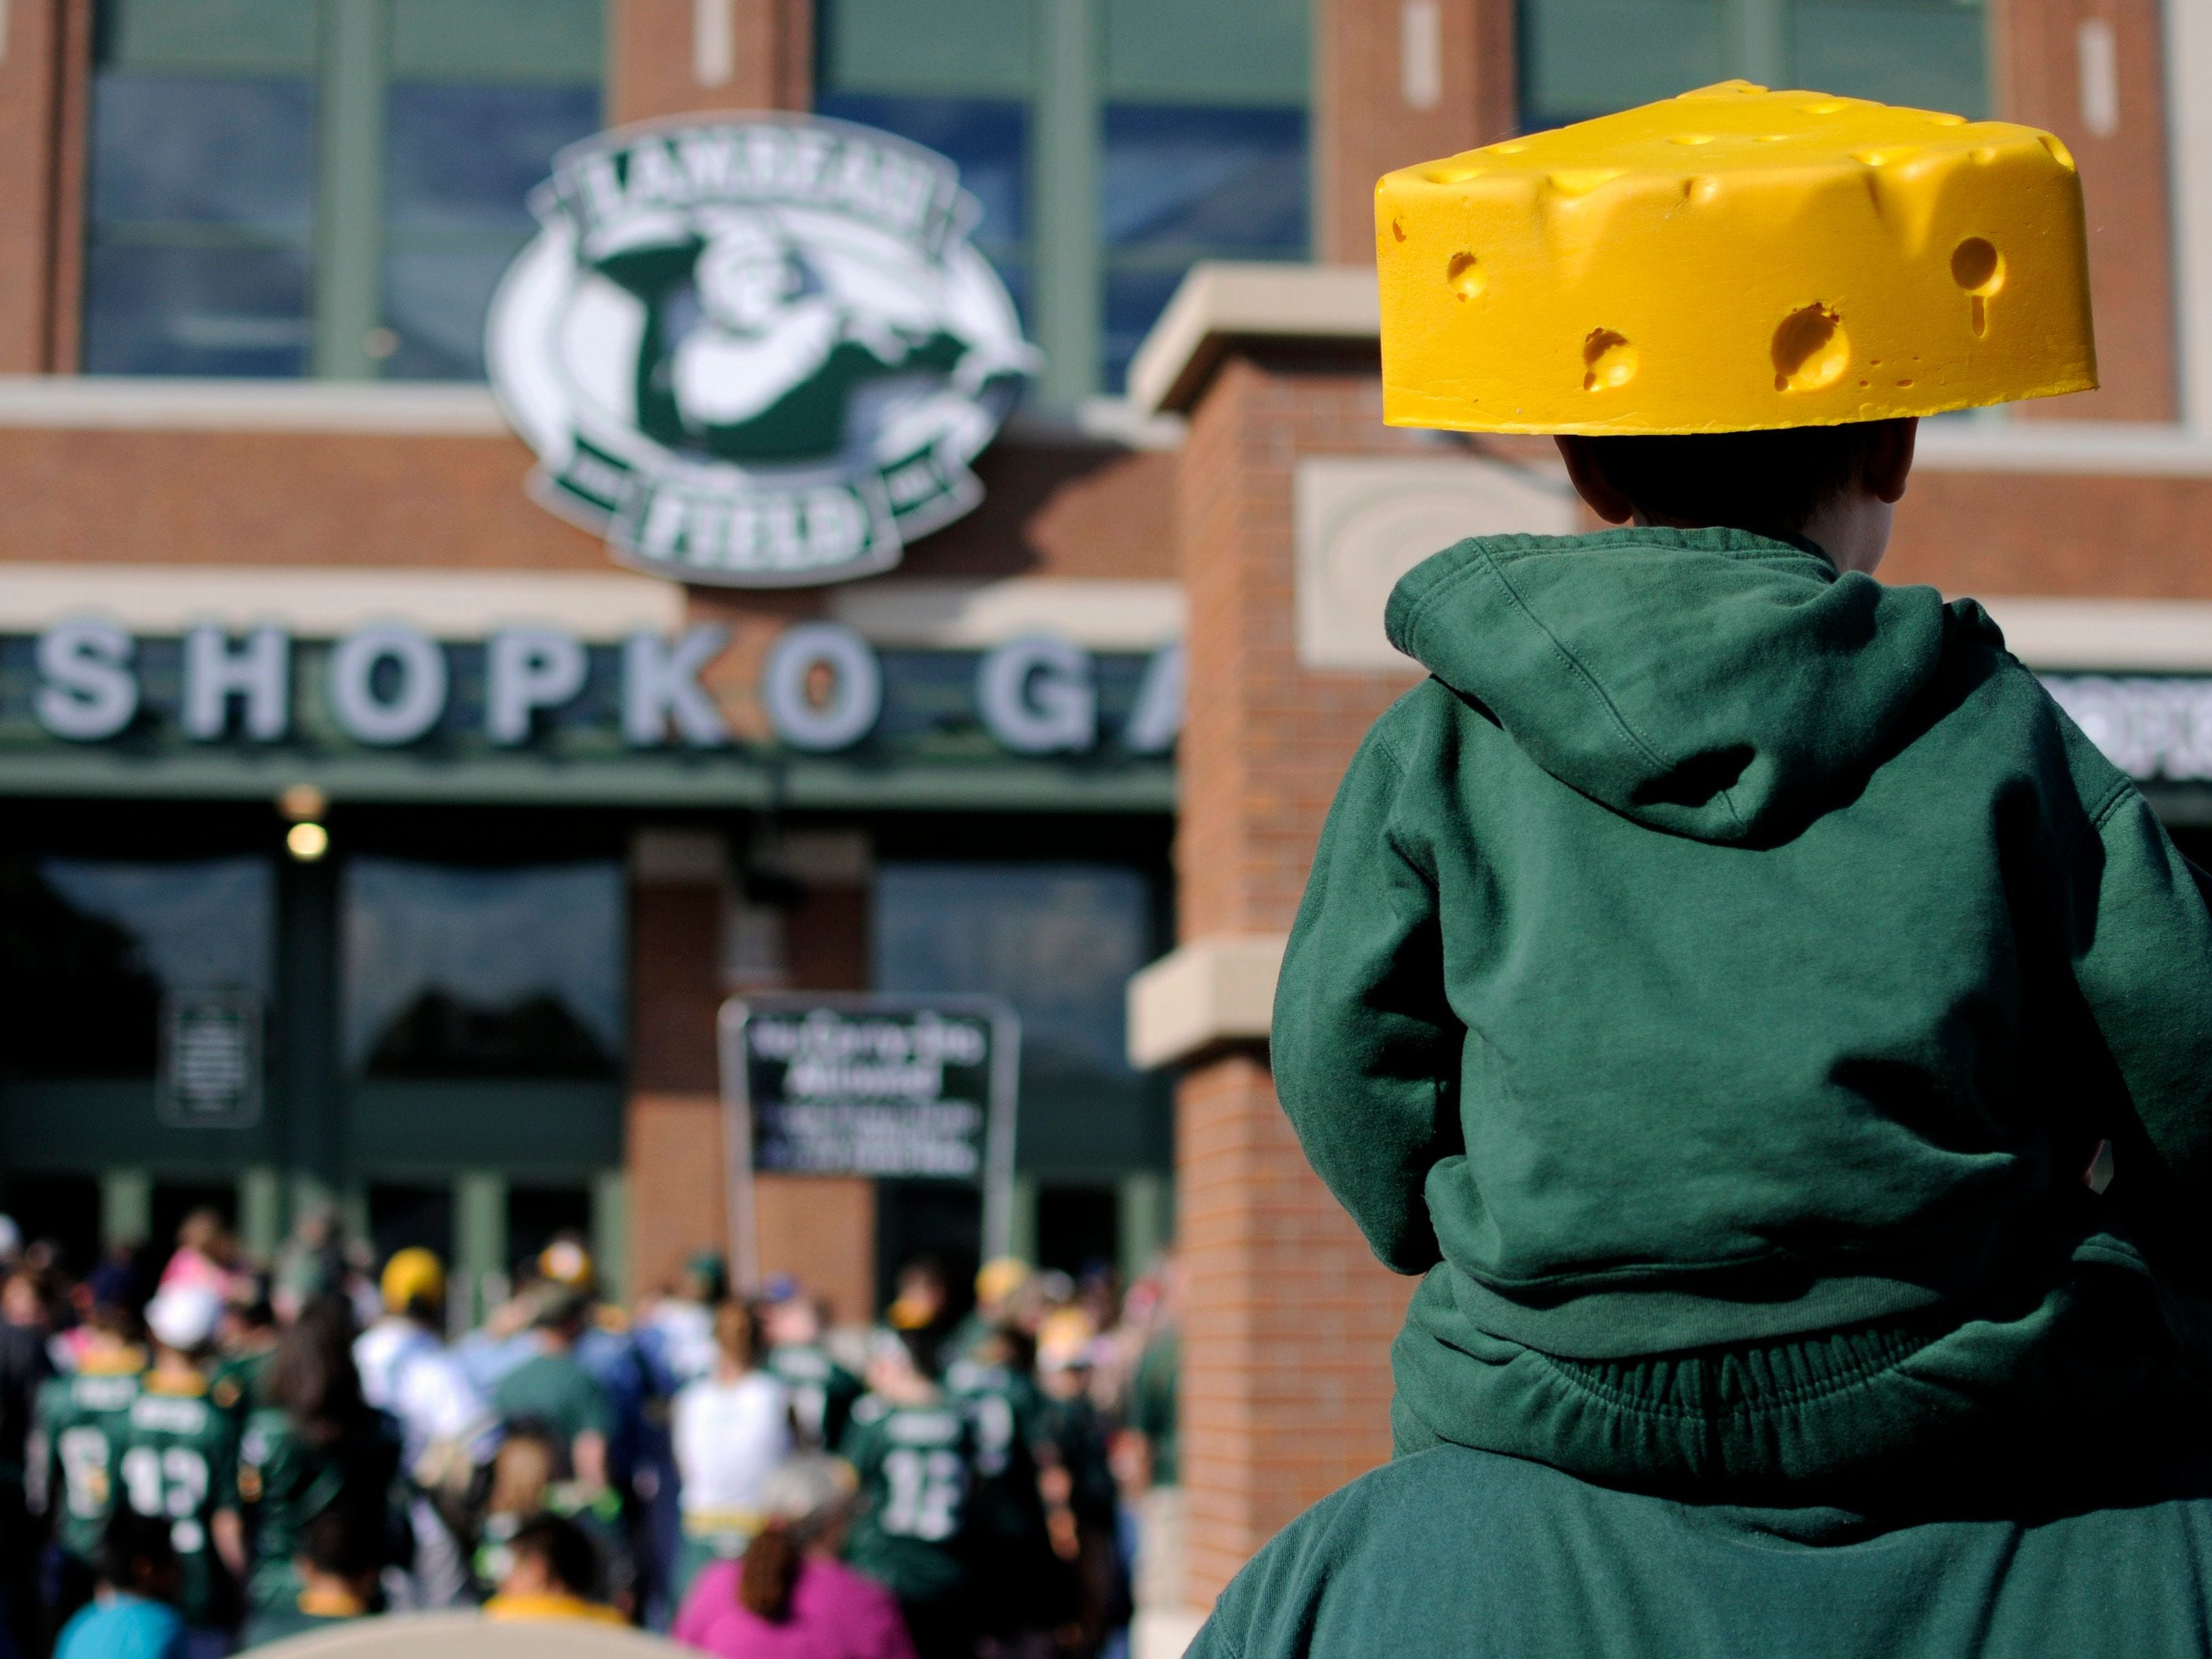 A young cheesehead waits to enter the new Shopko Gate before Packers Family Night at Lambeau Field on Aug. 3, 2013.